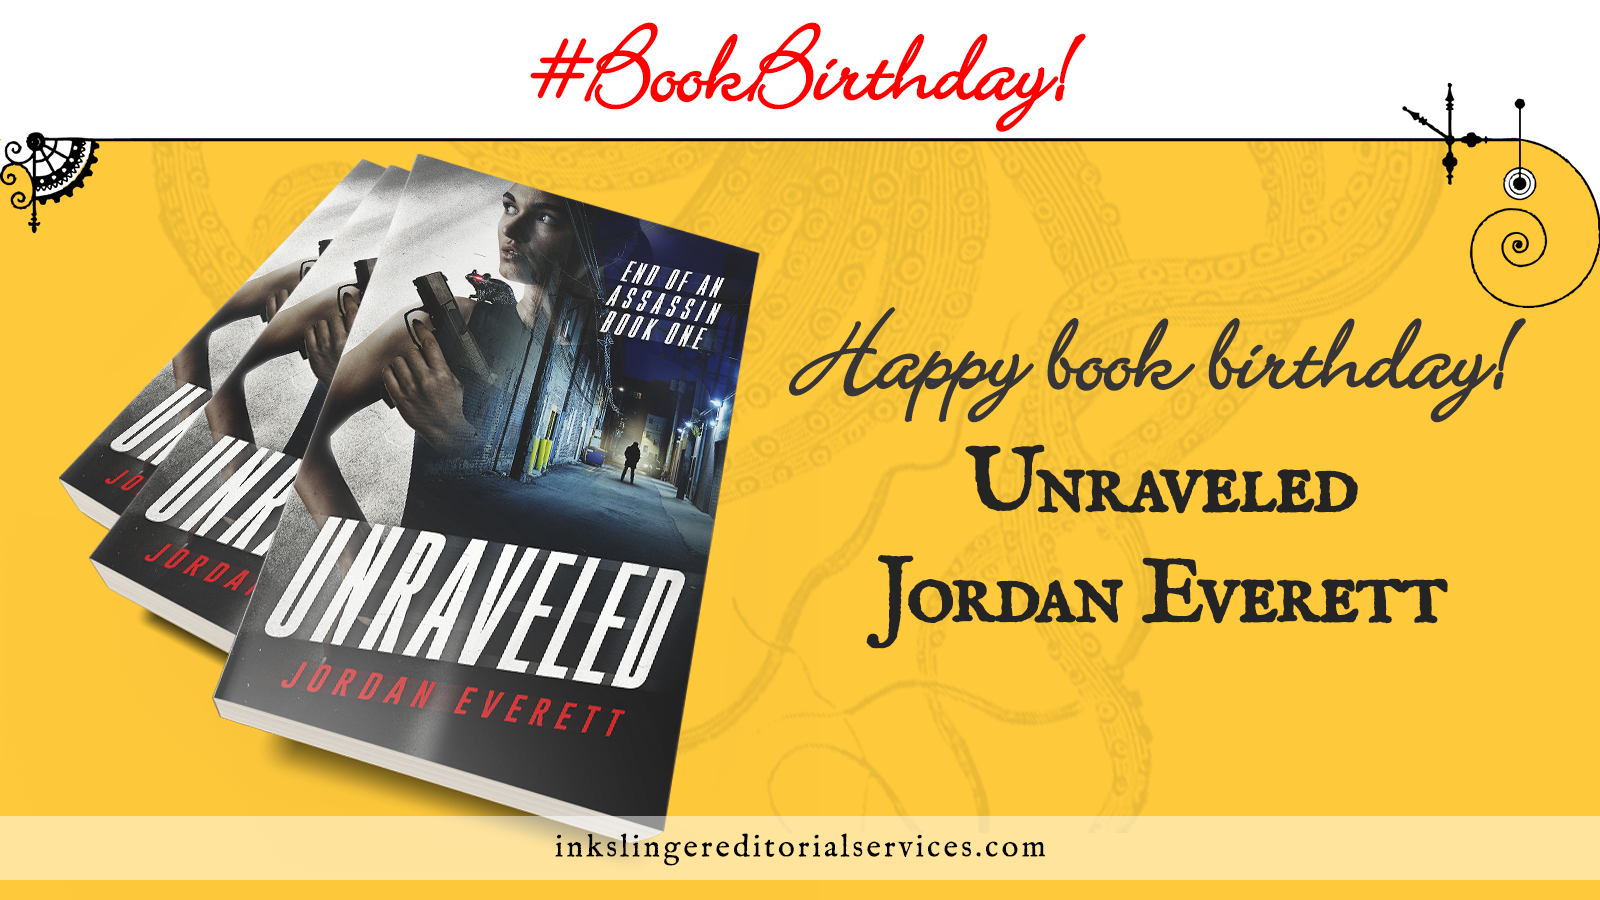 #BookBirthday Happy book birthday! Unraveled by Jordan Everett. 3 copies of Unraveled are stacked on a field of yellow with faded tentacles in the background.